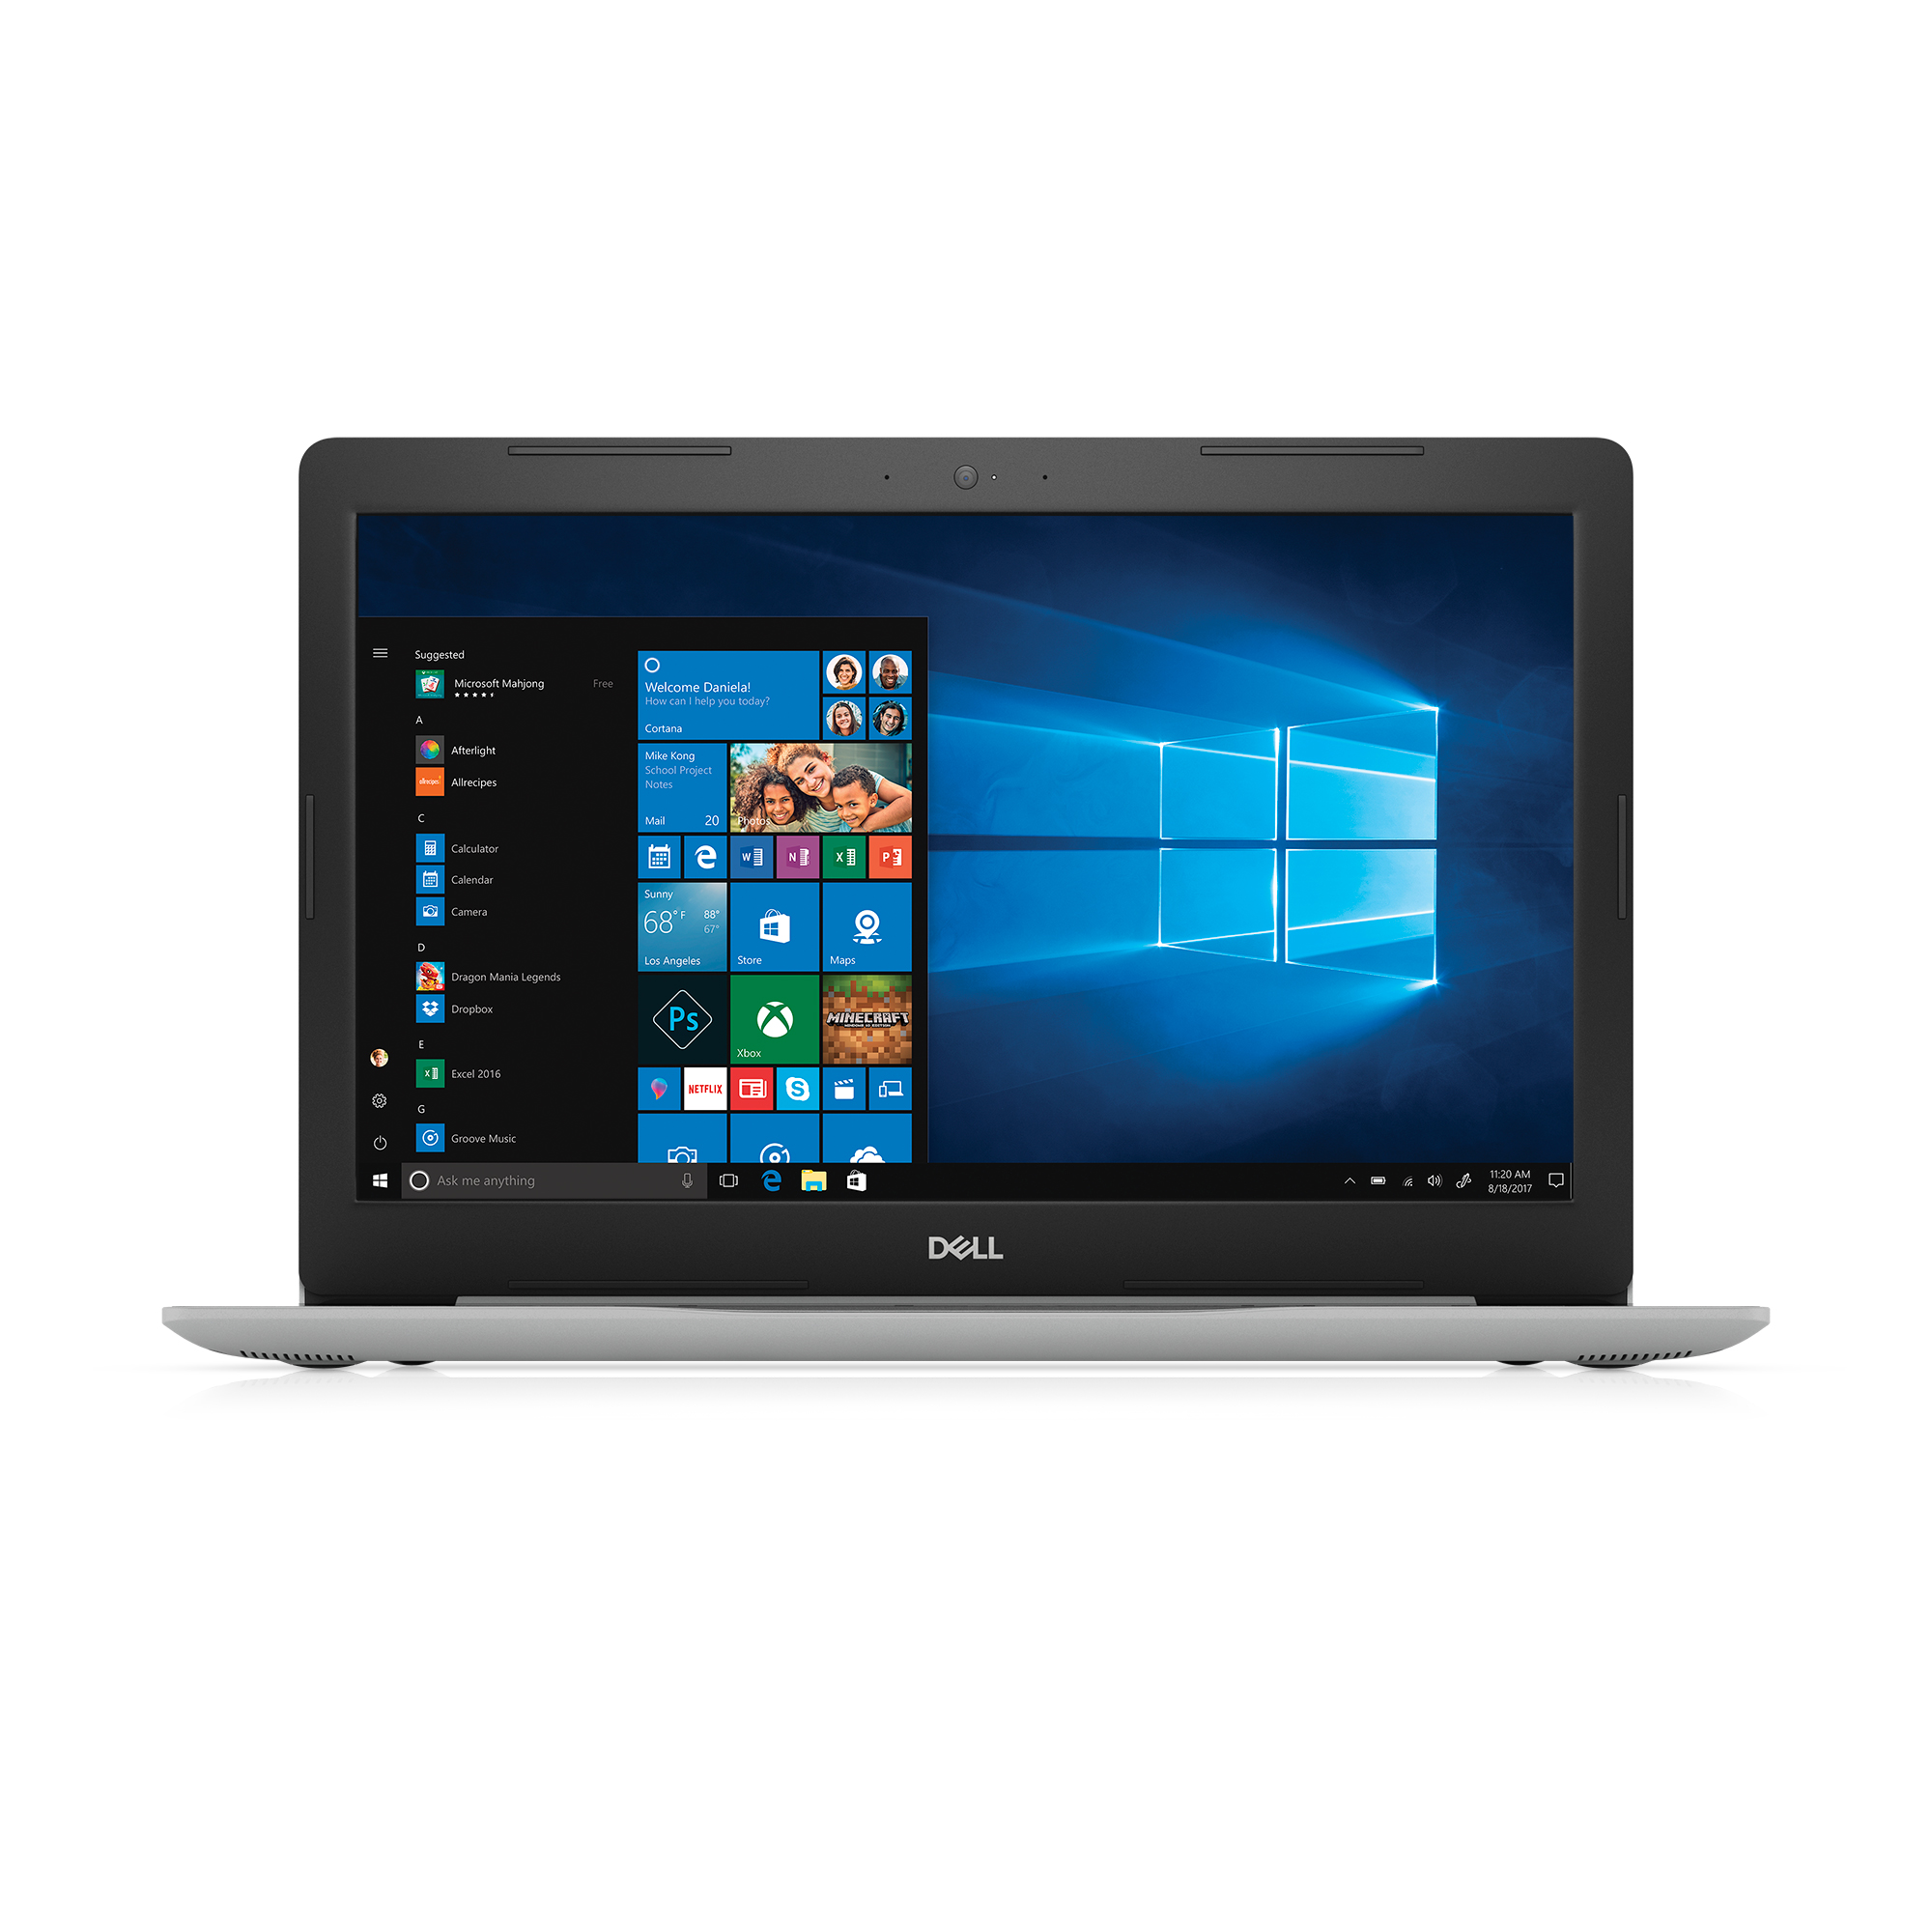 "Dell Inspiron 15 5570 Series 15.6"" HD Intel Core i7 Laptop"